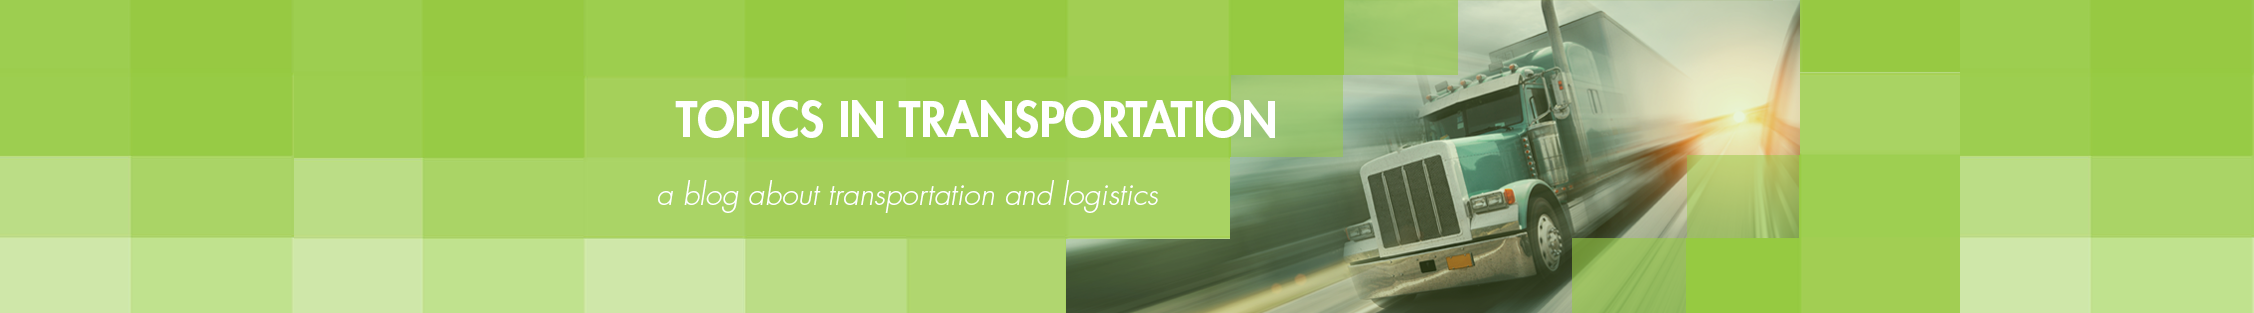 Transportation-Blog_HEADER_v01.png